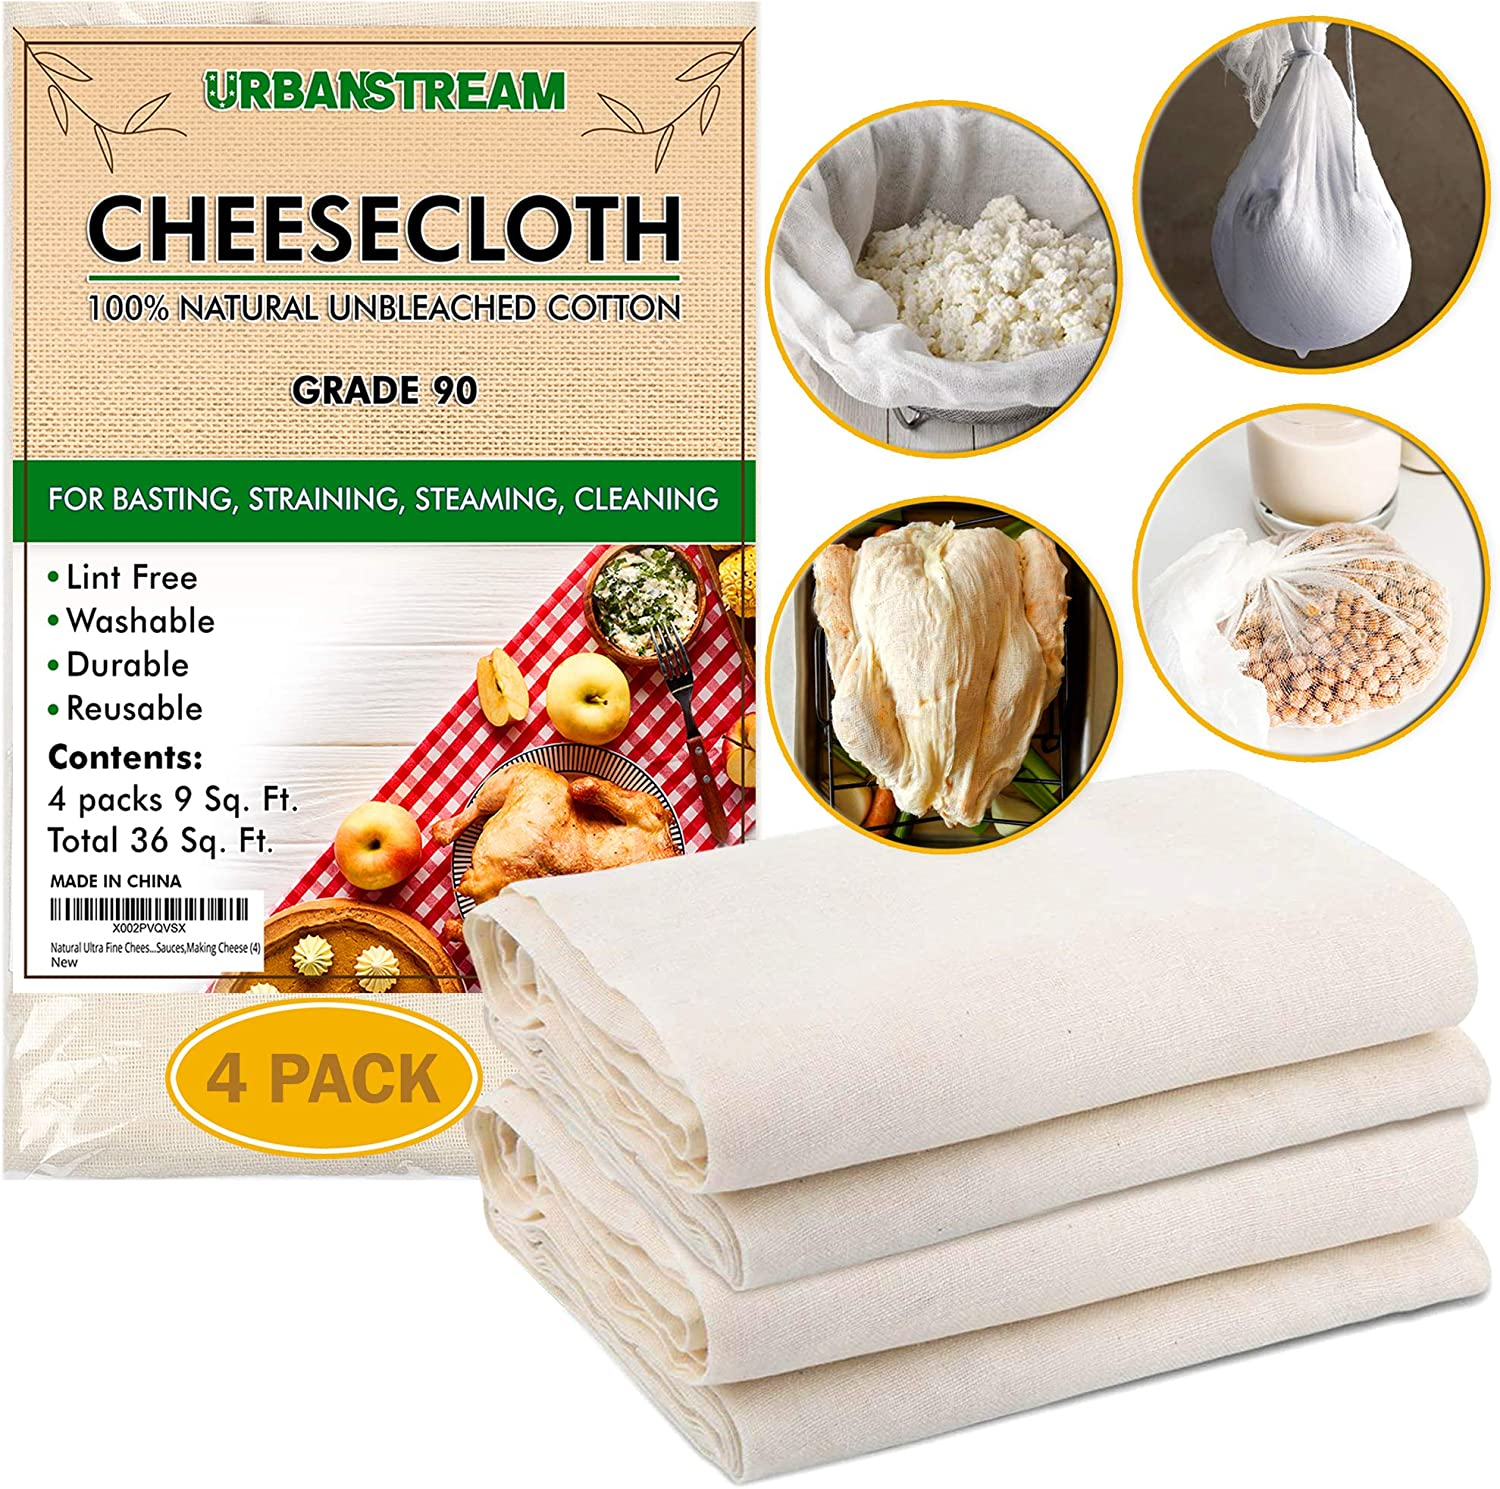 Cheesecloth, Grade 90, 36 Sq Feet, Reusable, 100% Unbleached Cotton Fabric, Ultra Fine Cheesecloth for Cooking, Nut Milk Bag, Strainer, Filter, 4Yards